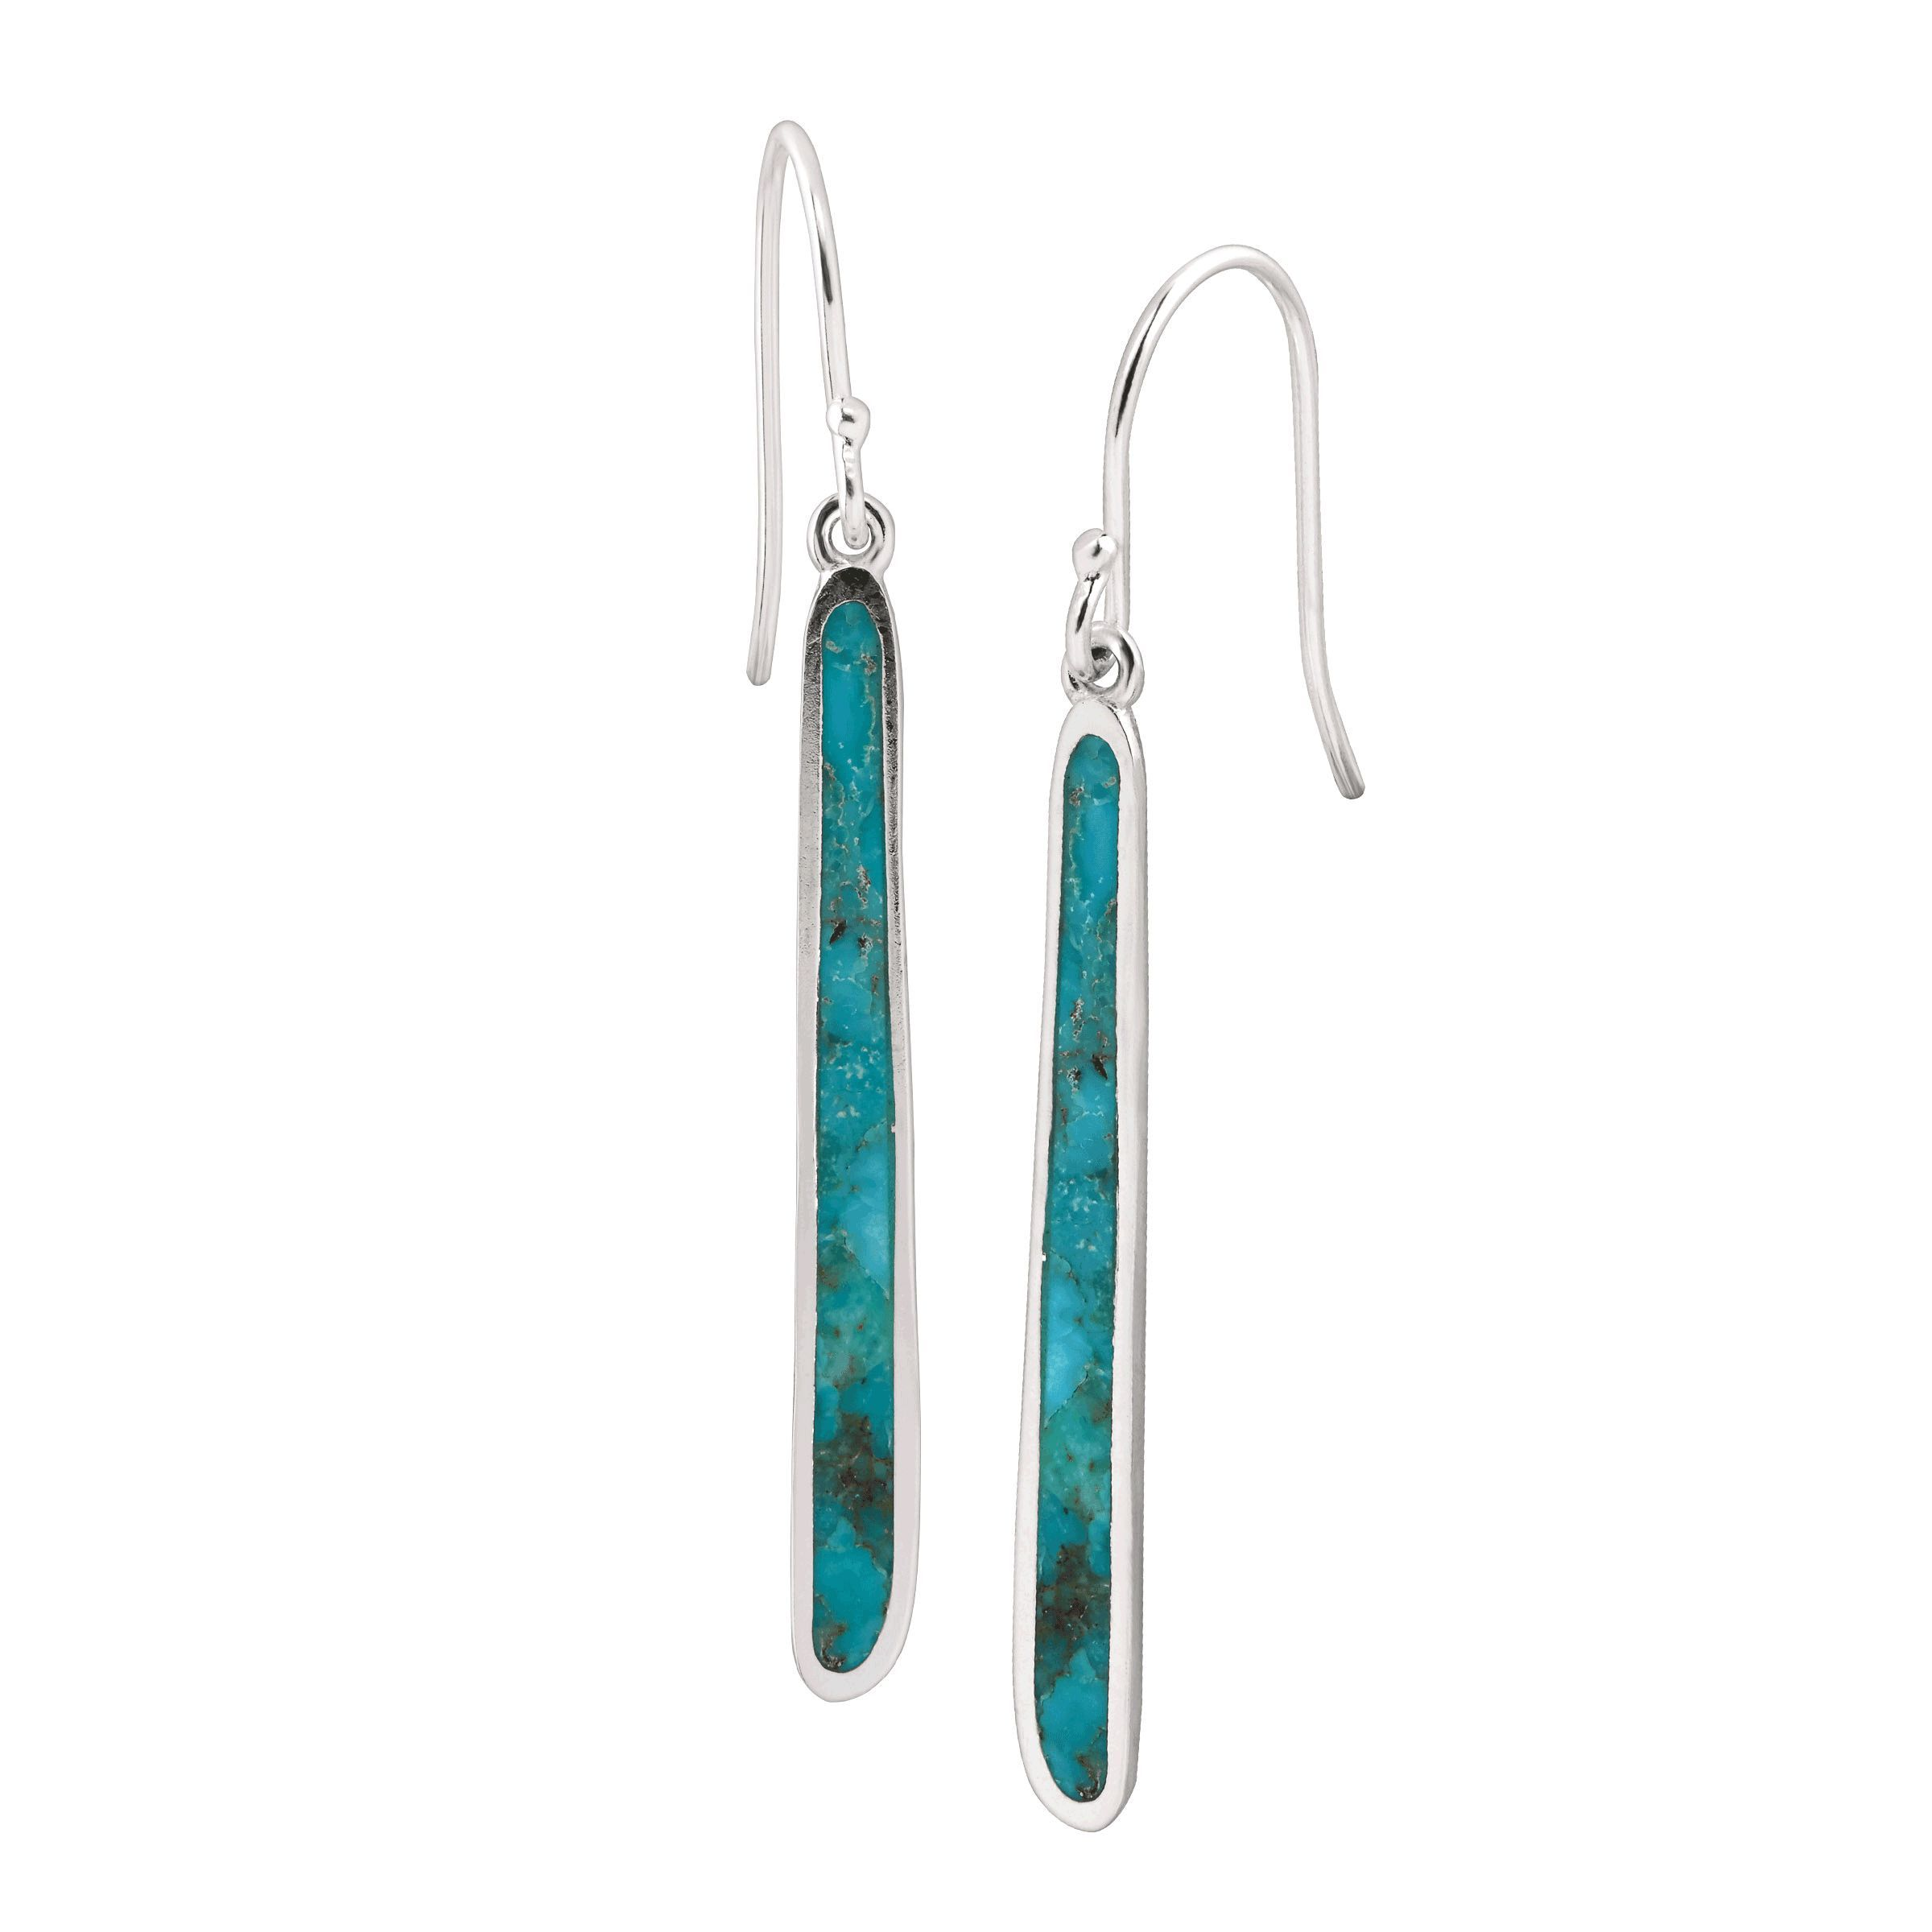 42ecf8cad Silpada 'Turquoise Drop' Compressed Turquoise Drop Earrings in ...